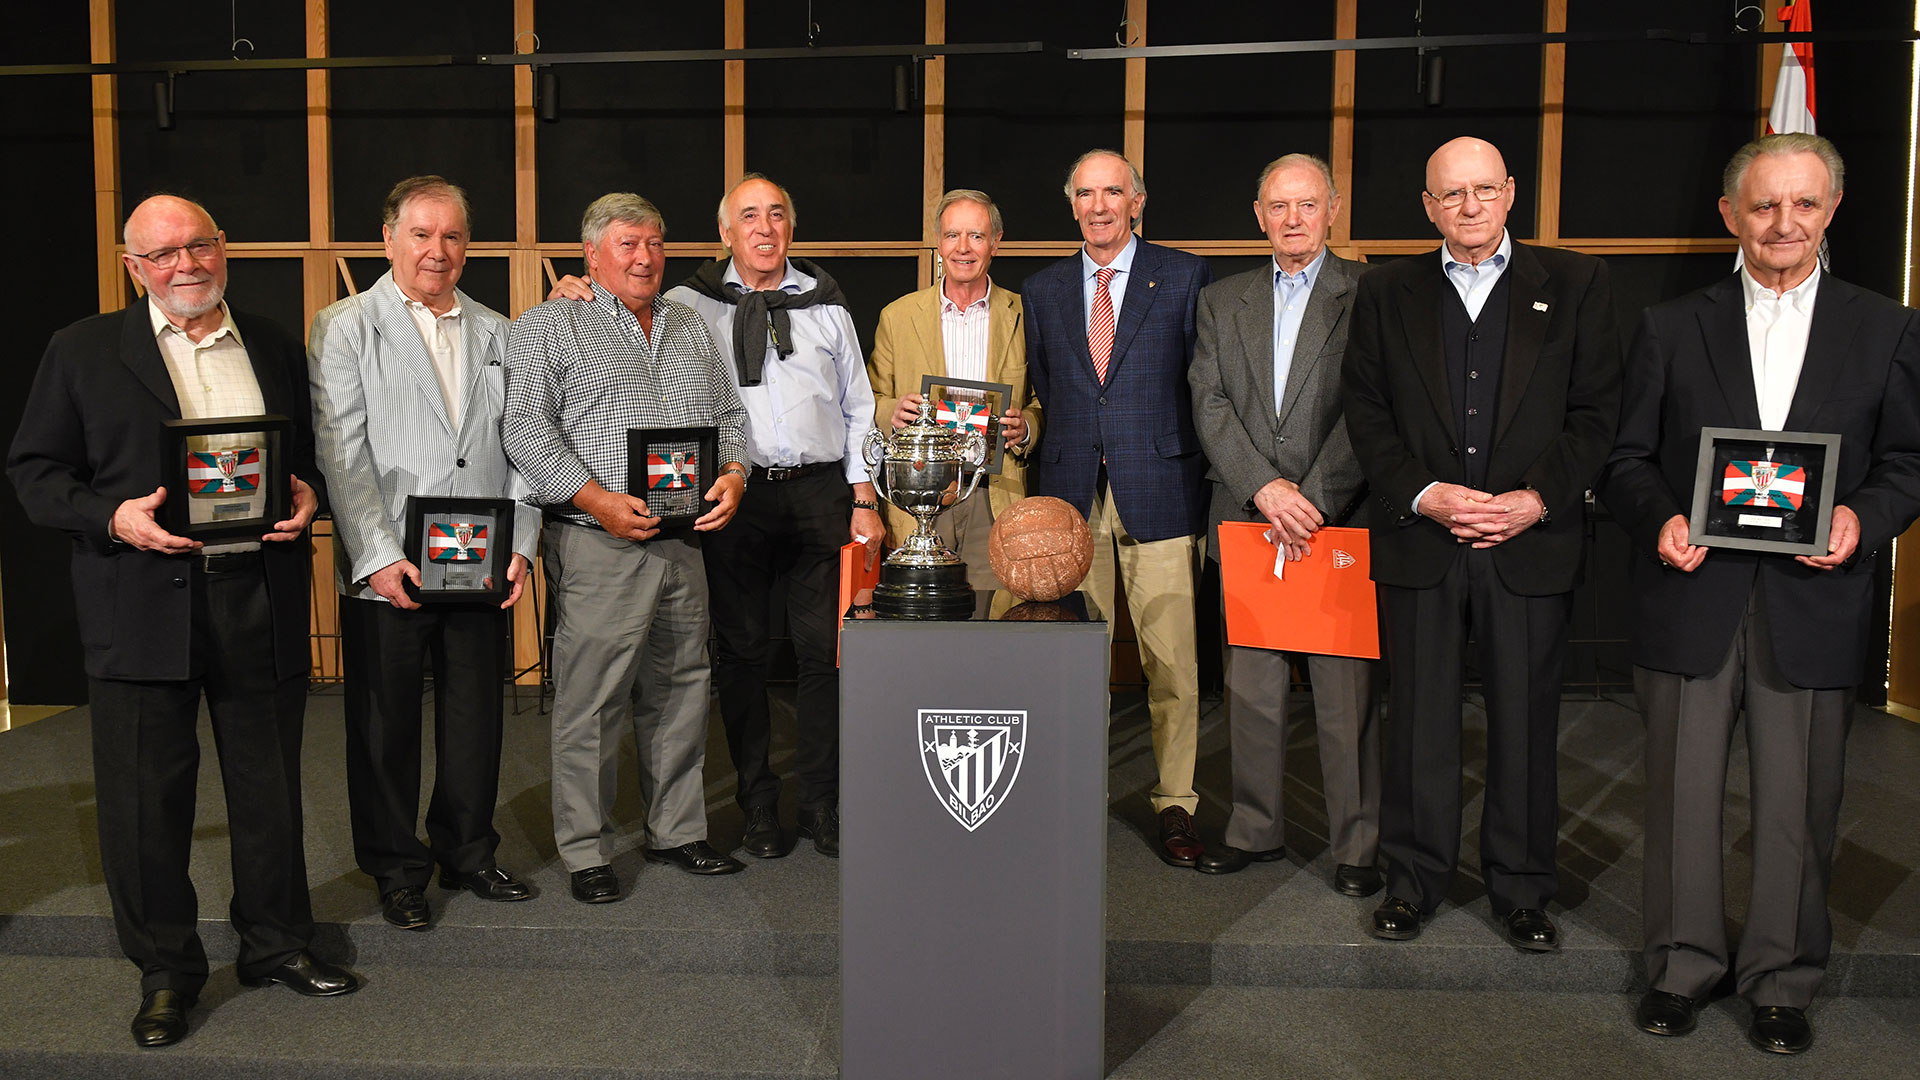 Tribute to the winners of the 69th Cup